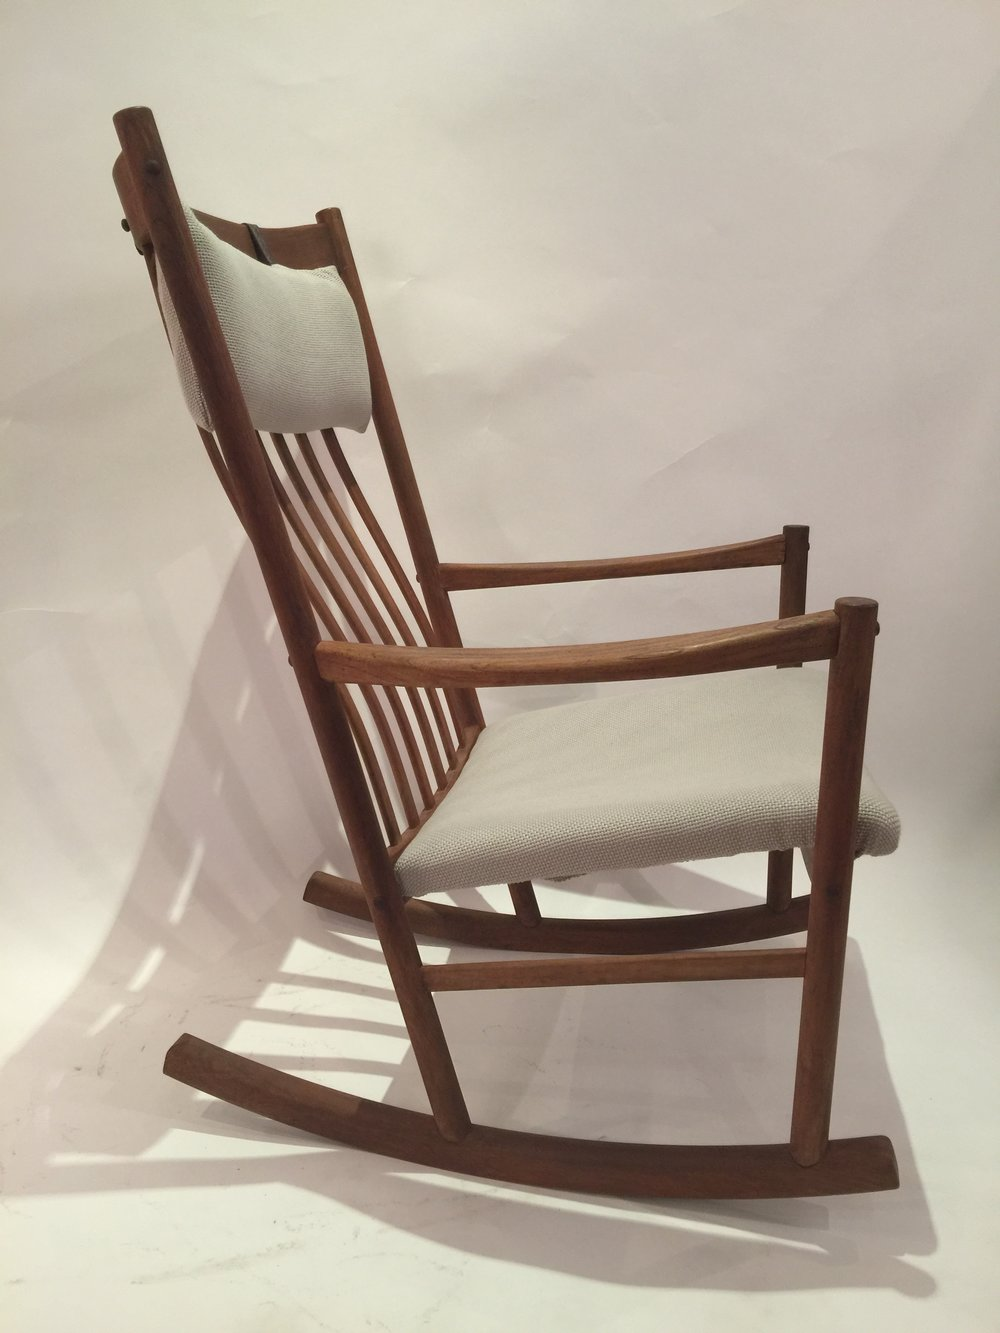 Wagner for Tram Stole - rocking chair 7.JPG